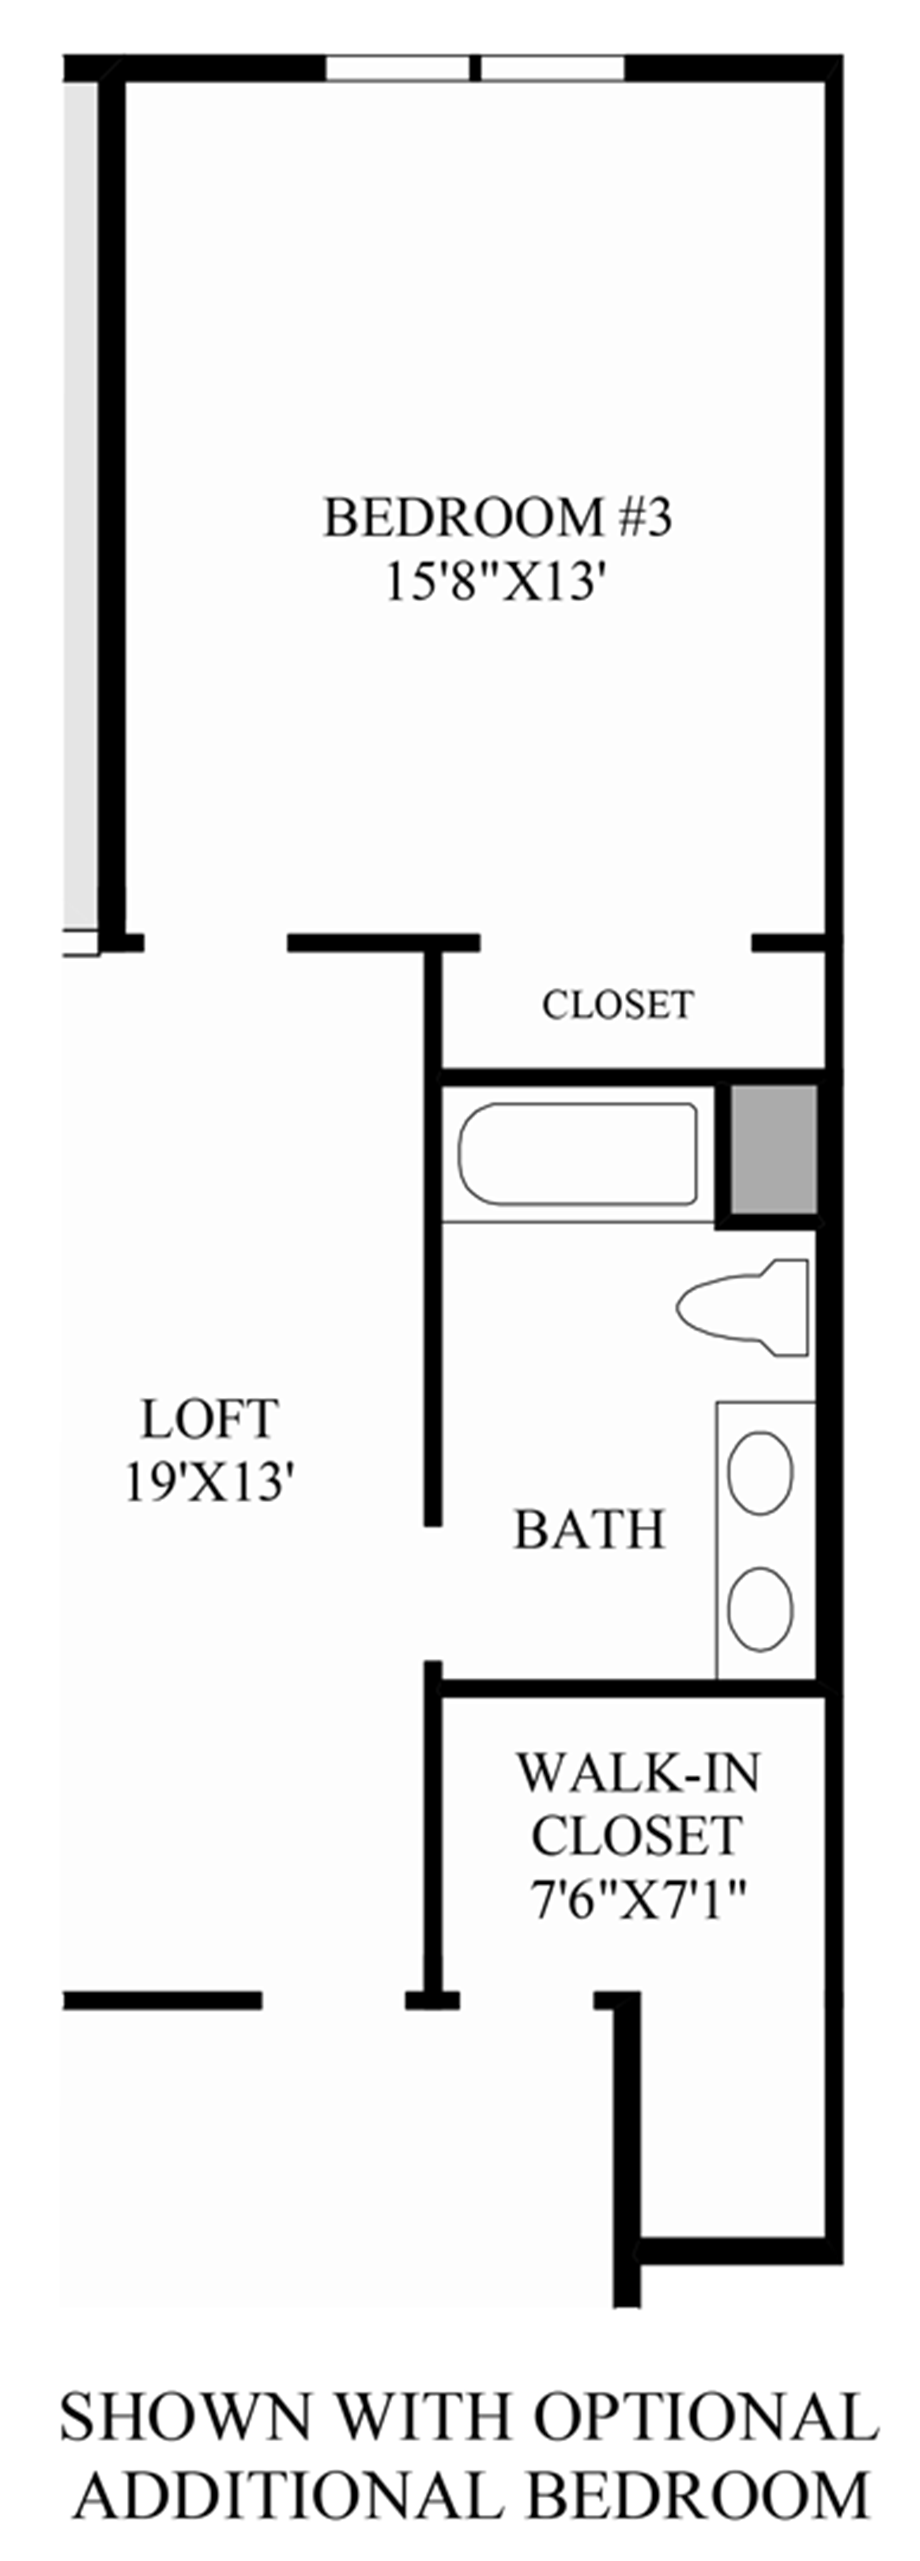 Optional Additional Bed Floor Plan